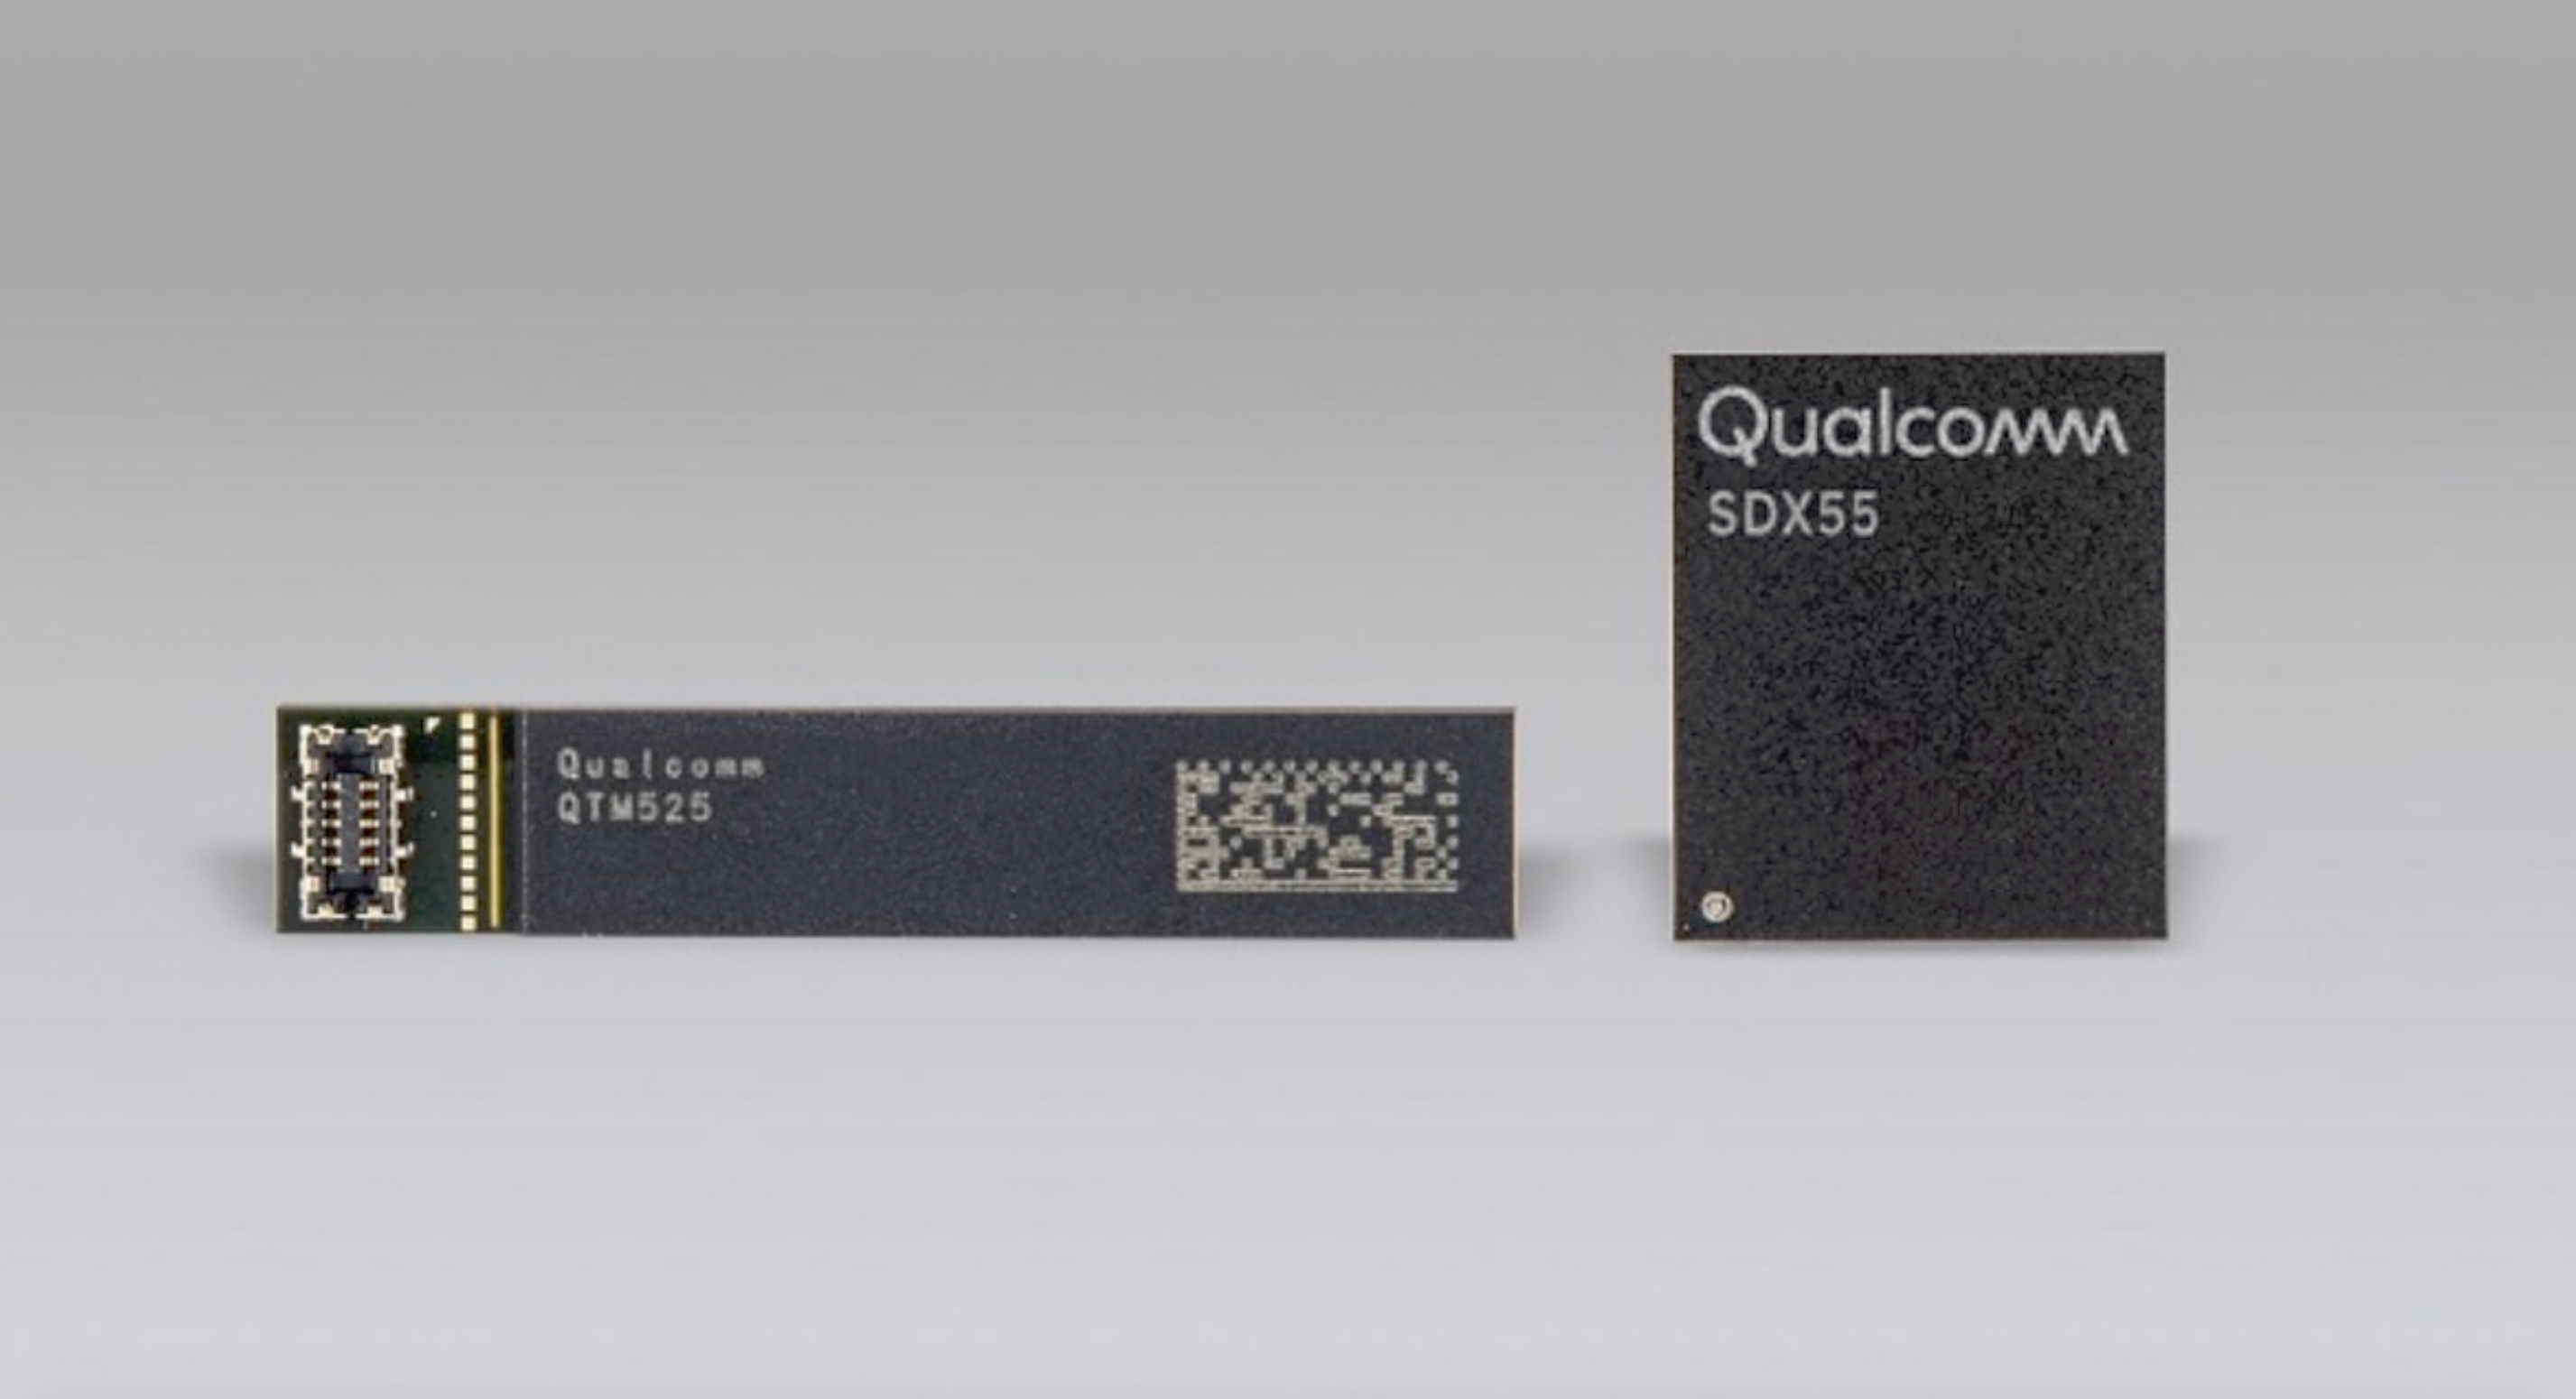 Qualcomm Snapdragon X55 QTM525